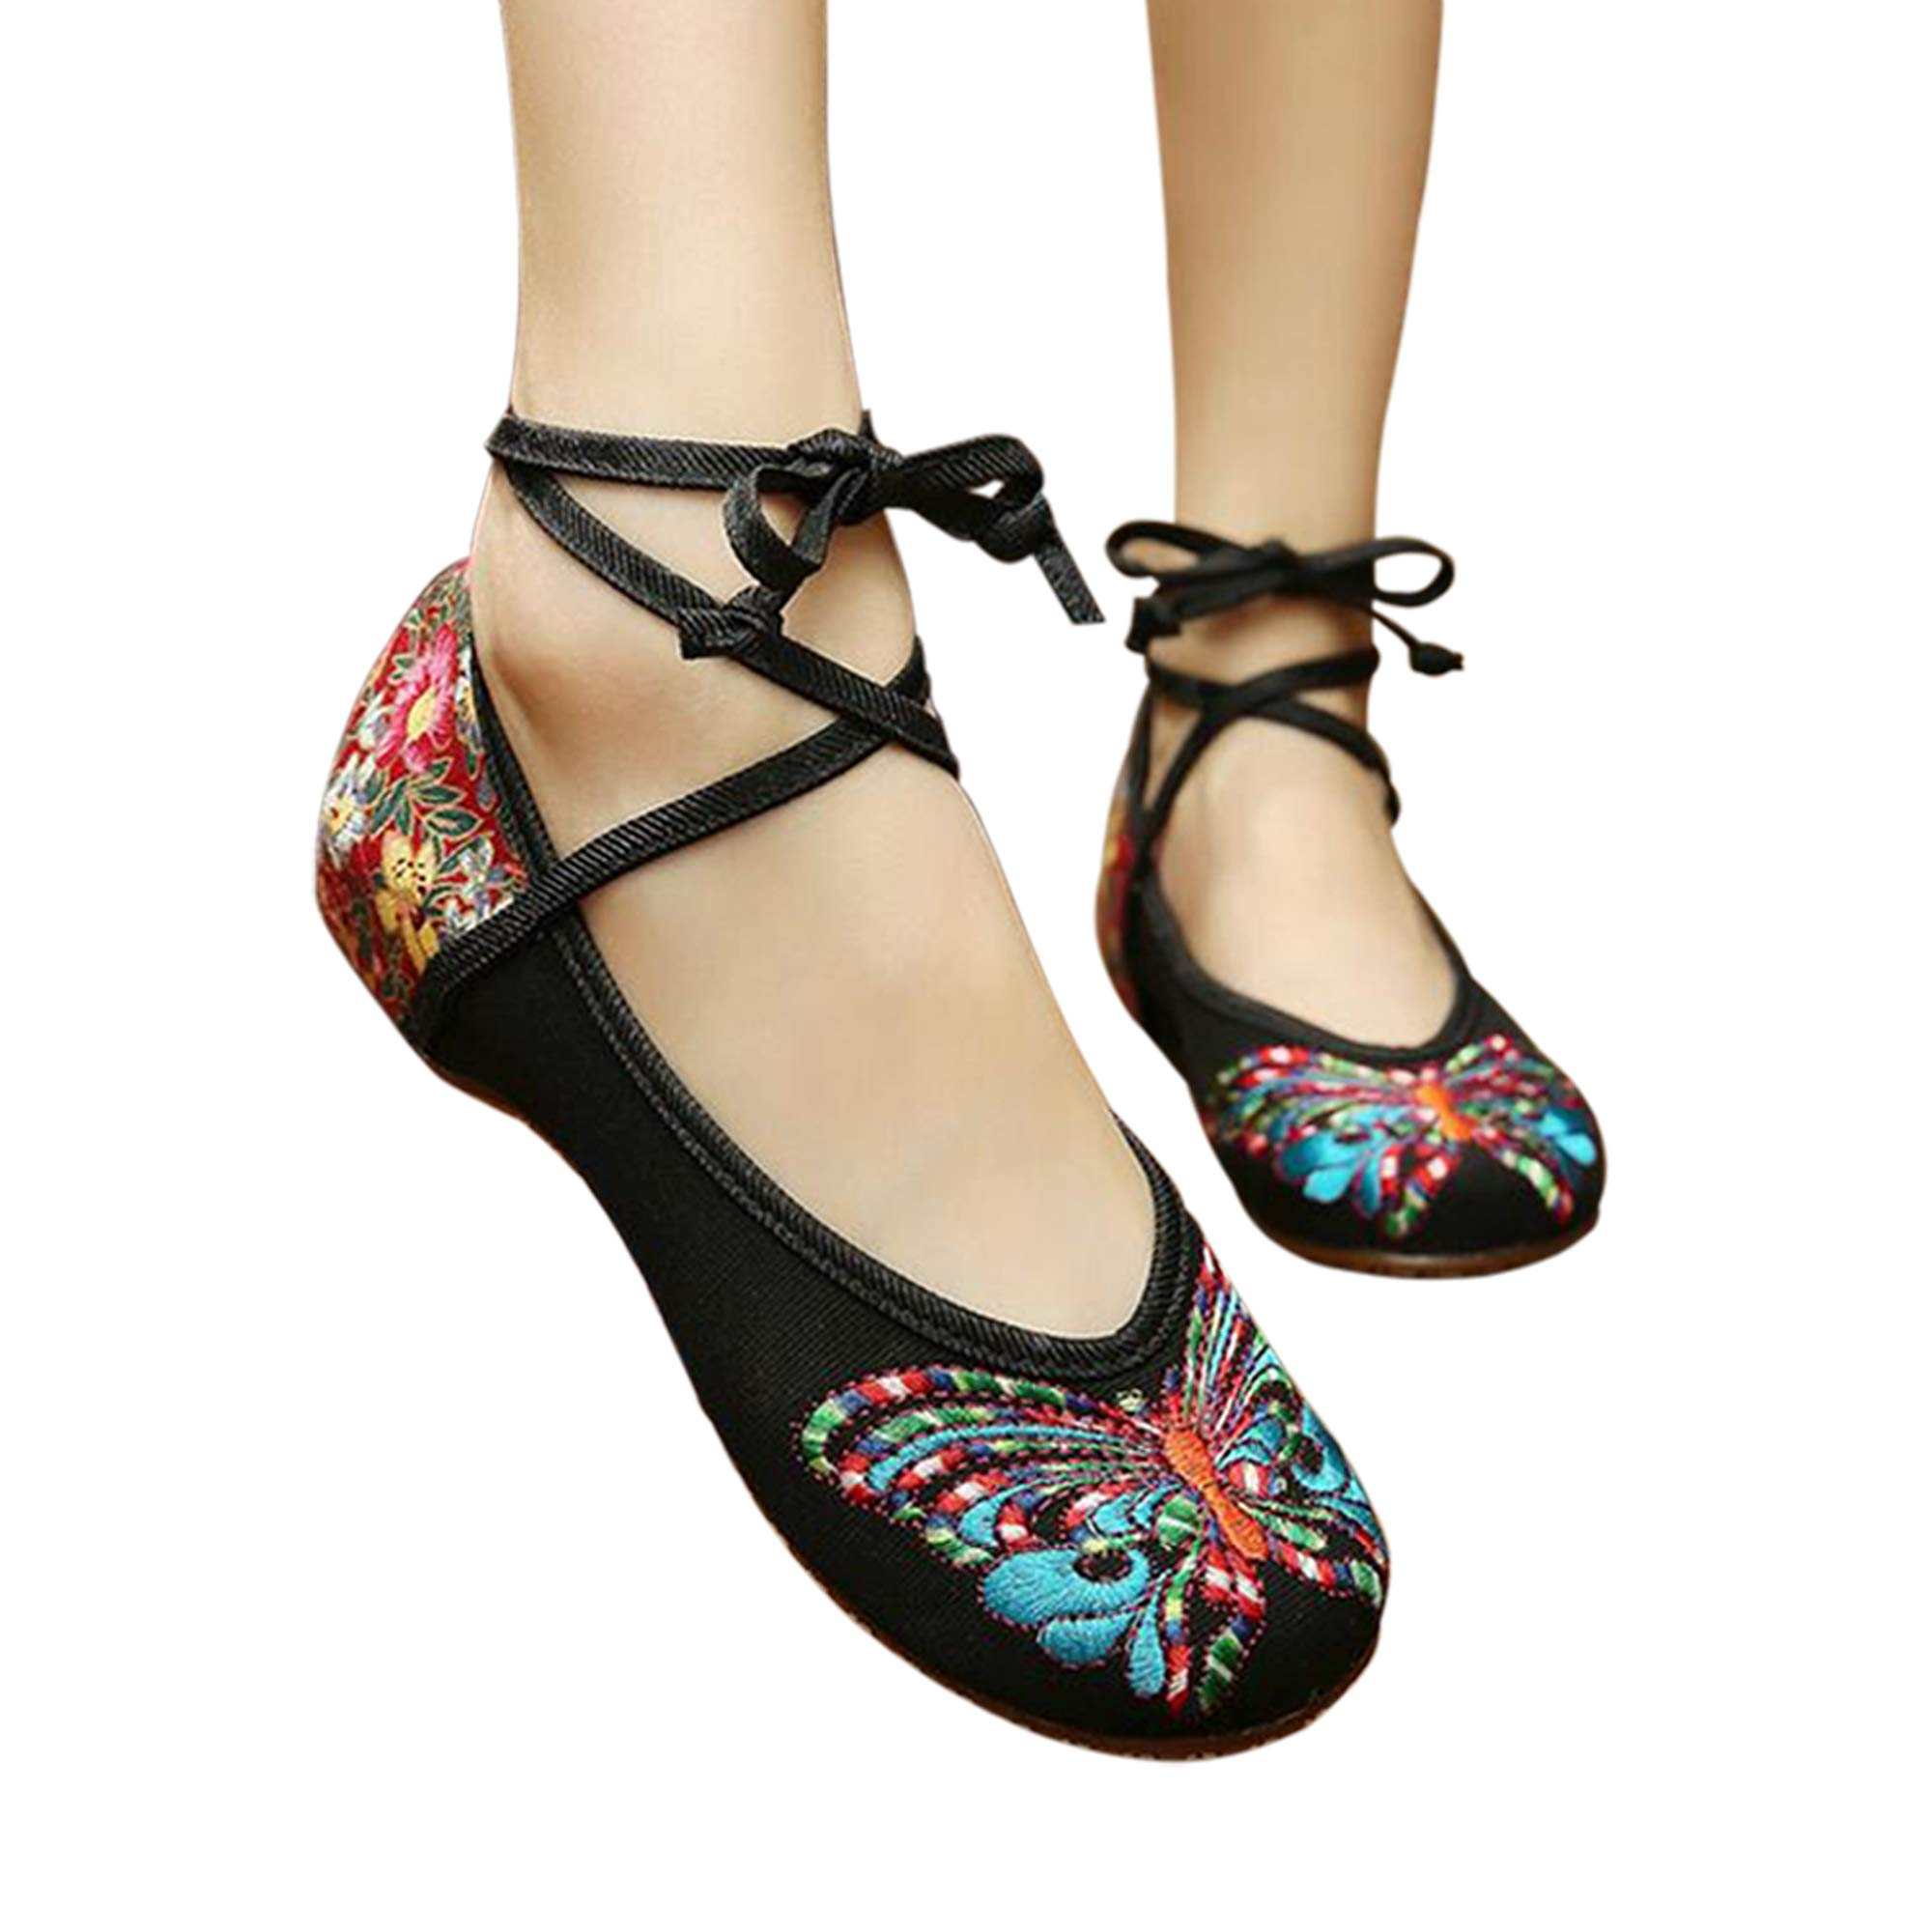 CINAK Embroidered Chinese Style Loafers Shoes Butterfly Embroidery Ballet Round Toe Black Flats (9 B(M) US/EU41/CN42/26CM,Black)